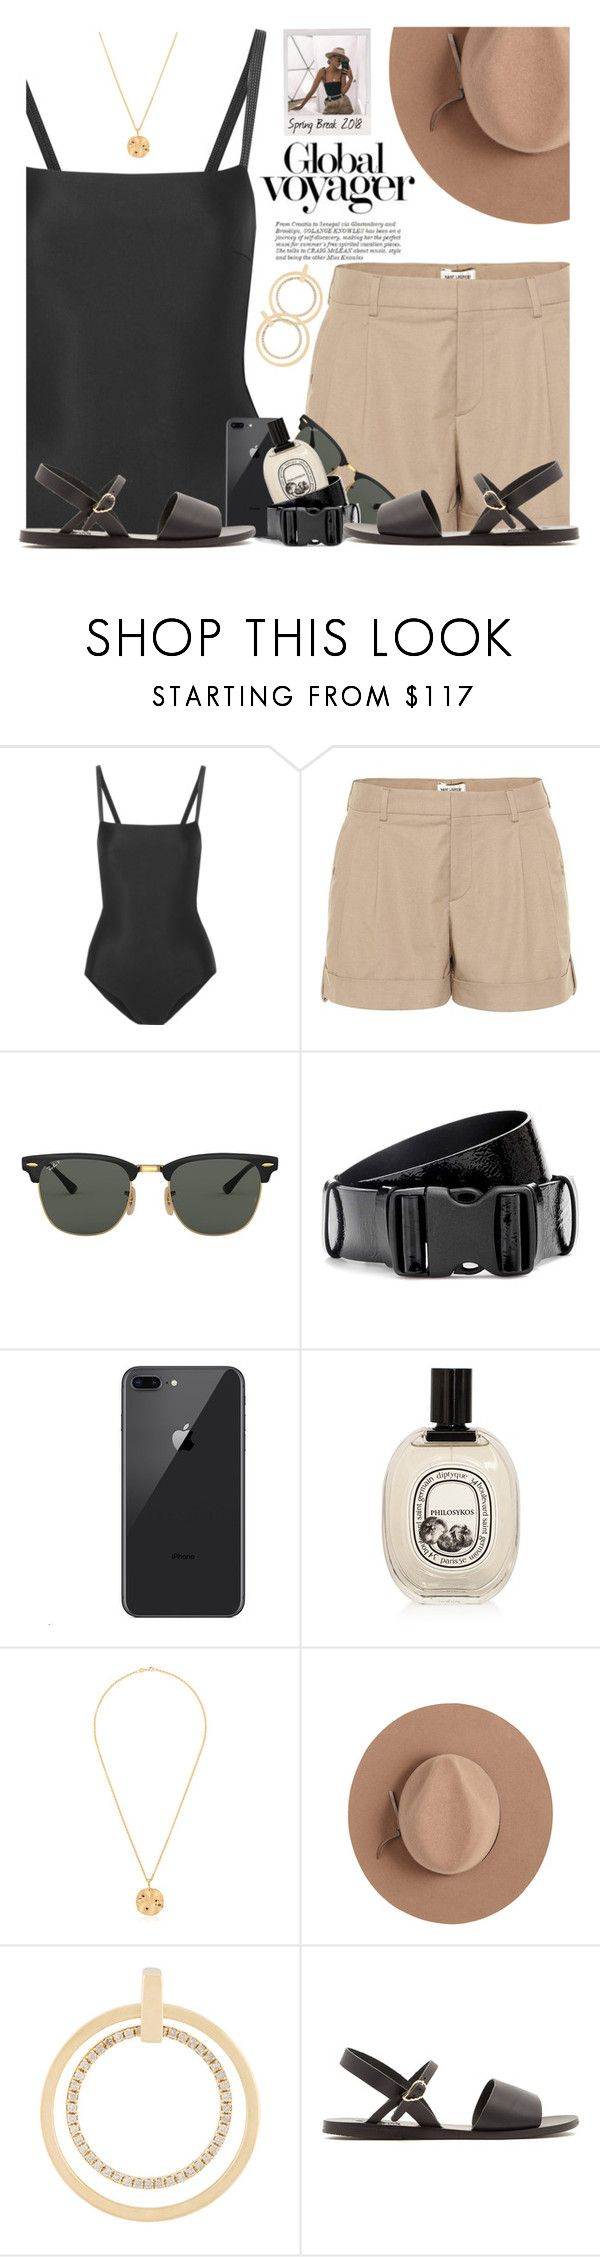 """""""Voyager"""" by hollowpoint-smile ❤ liked on Polyvore featuring Matteau, Yves Saint Laurent, Ray-Ban, Isabel Marant, Diptyque, Holly Ryan, Calypso Private Label, Asherali Knopfer and Ancient Greek Sandals"""